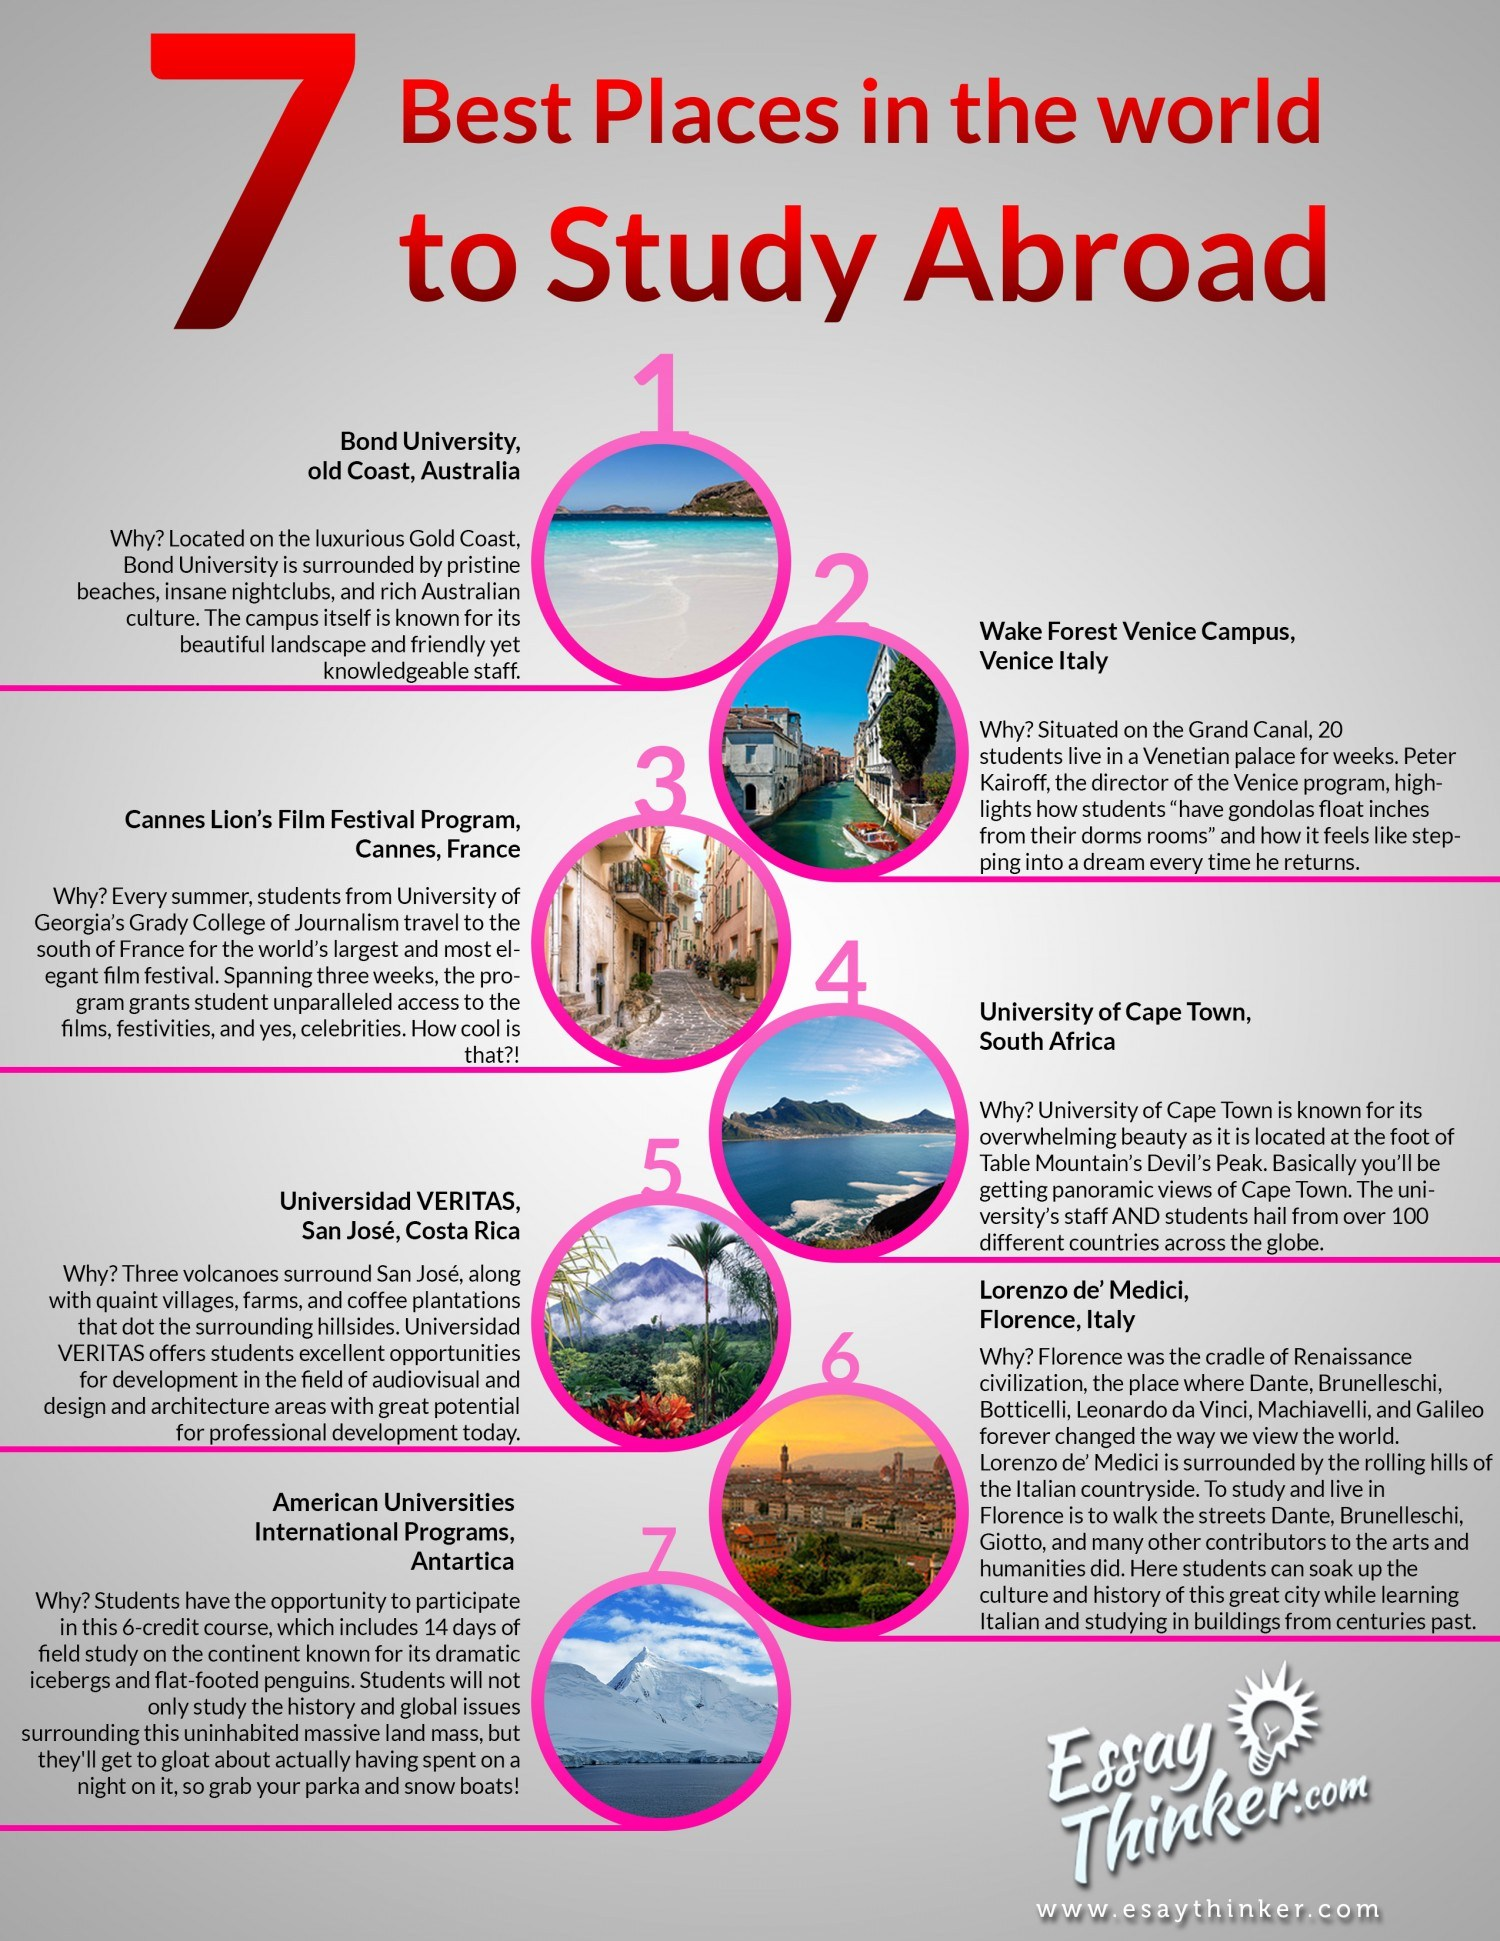 009 Studying Abroad Essay Example Best Places In The World To Study 53f49ac1d4c9b W1500 Beautiful Sample Ielts Conclusion Pdf Full